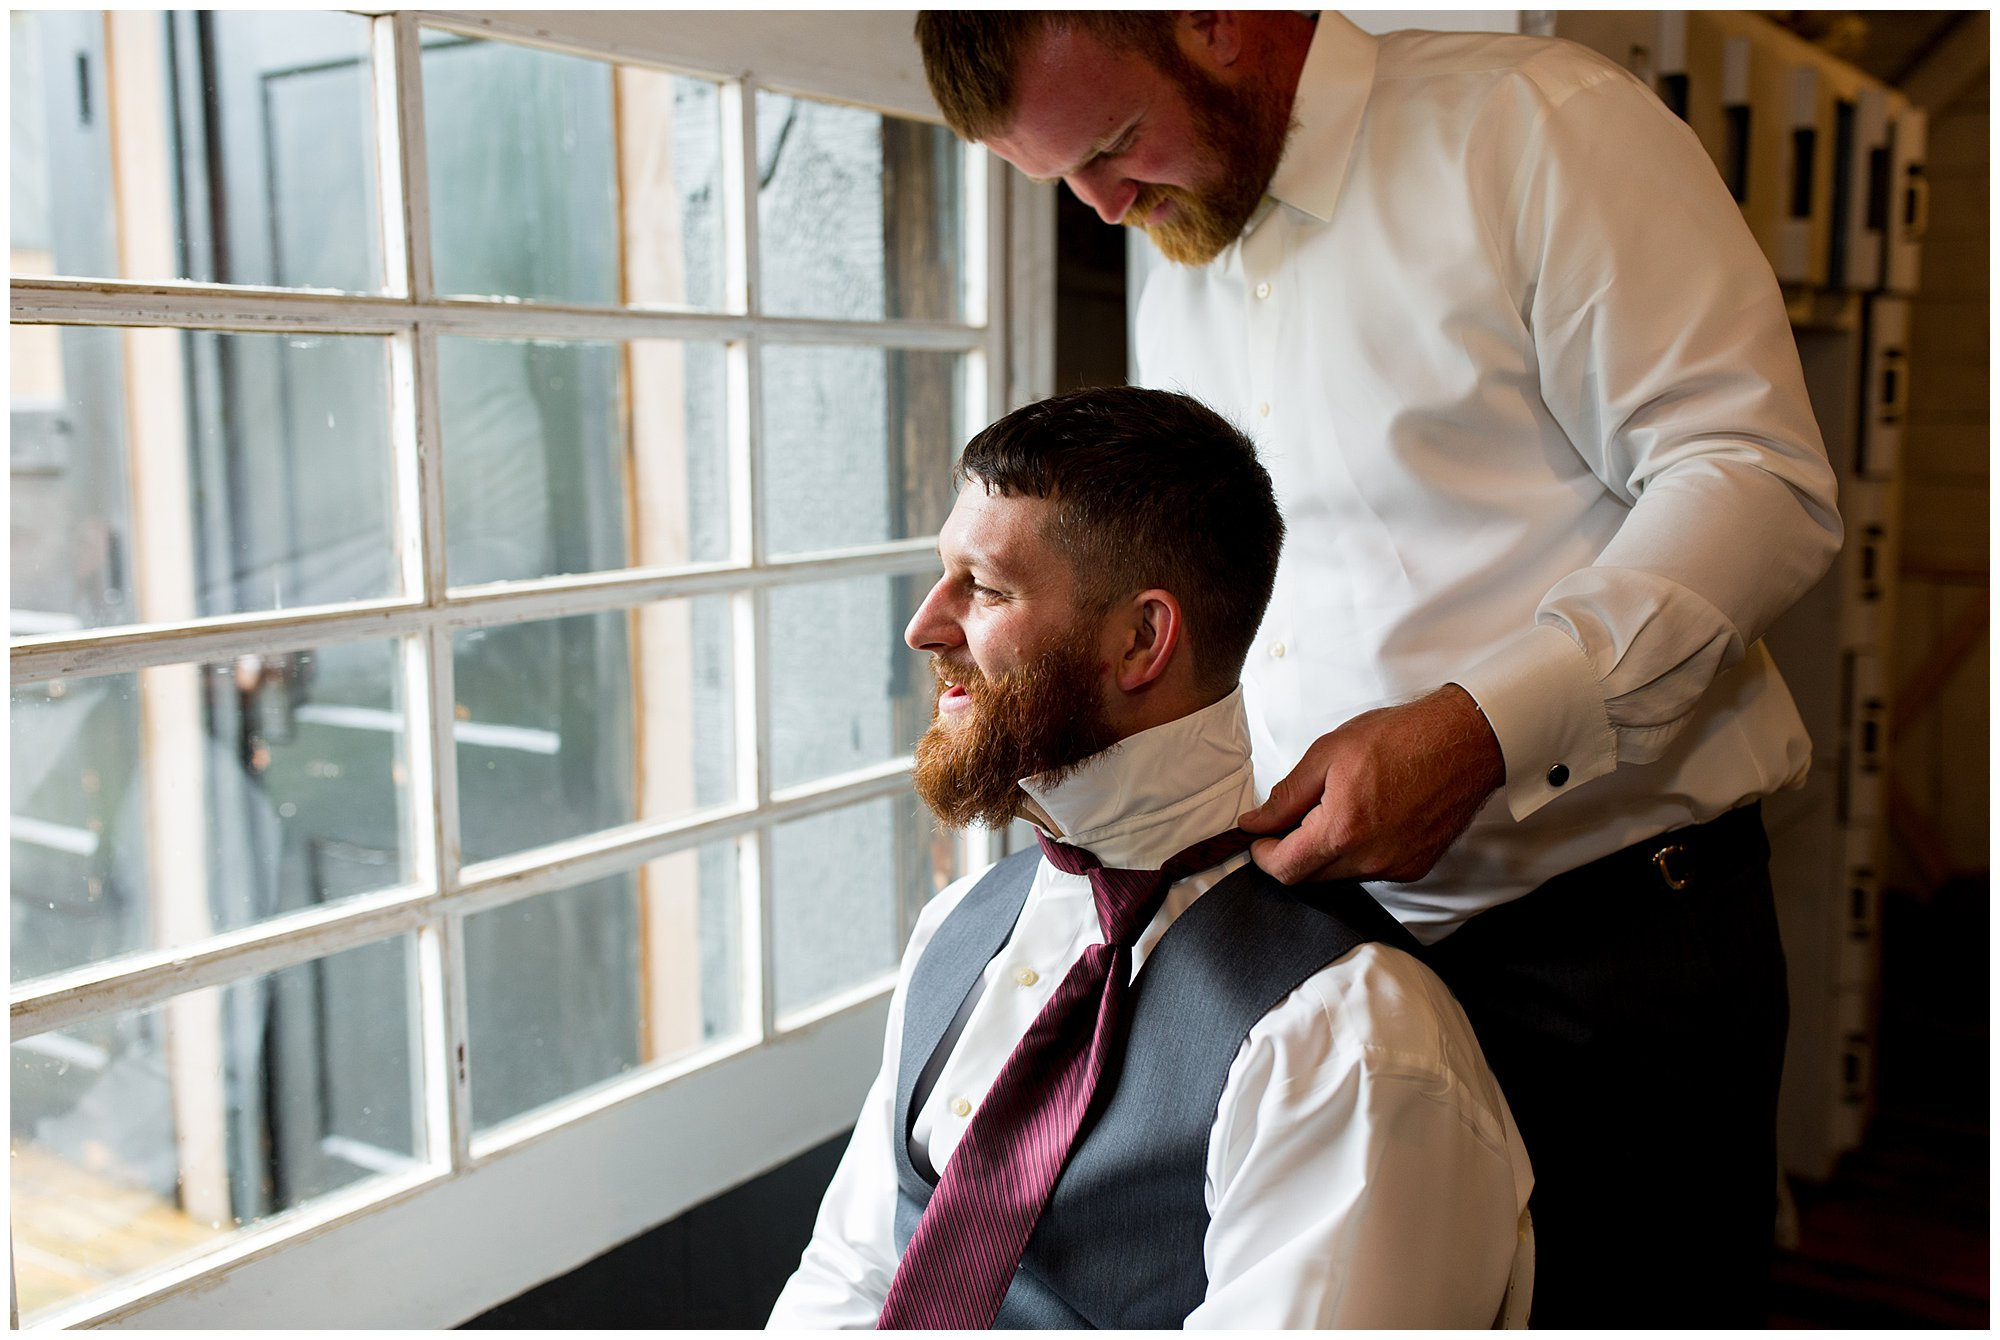 groom getting tie put on before wedding ceremony in Fremont, Indiana